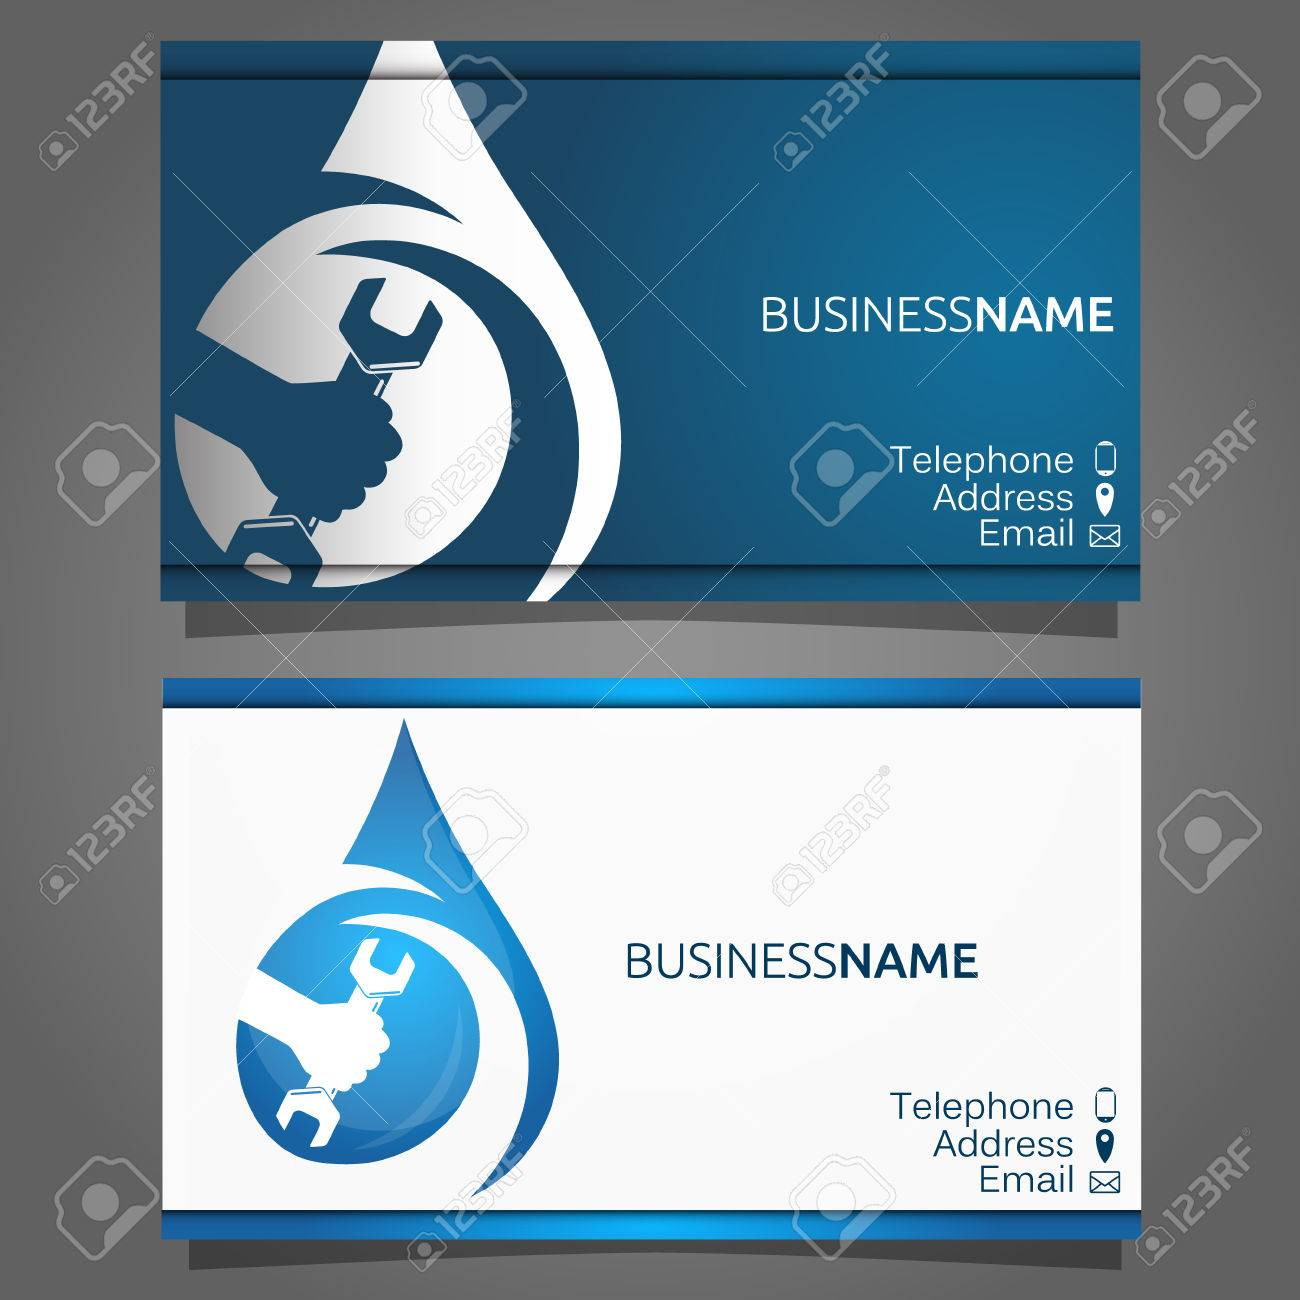 Business card for the repair of water supply and sanitary ware business card for the repair of water supply and sanitary ware wrench in hand stock colourmoves